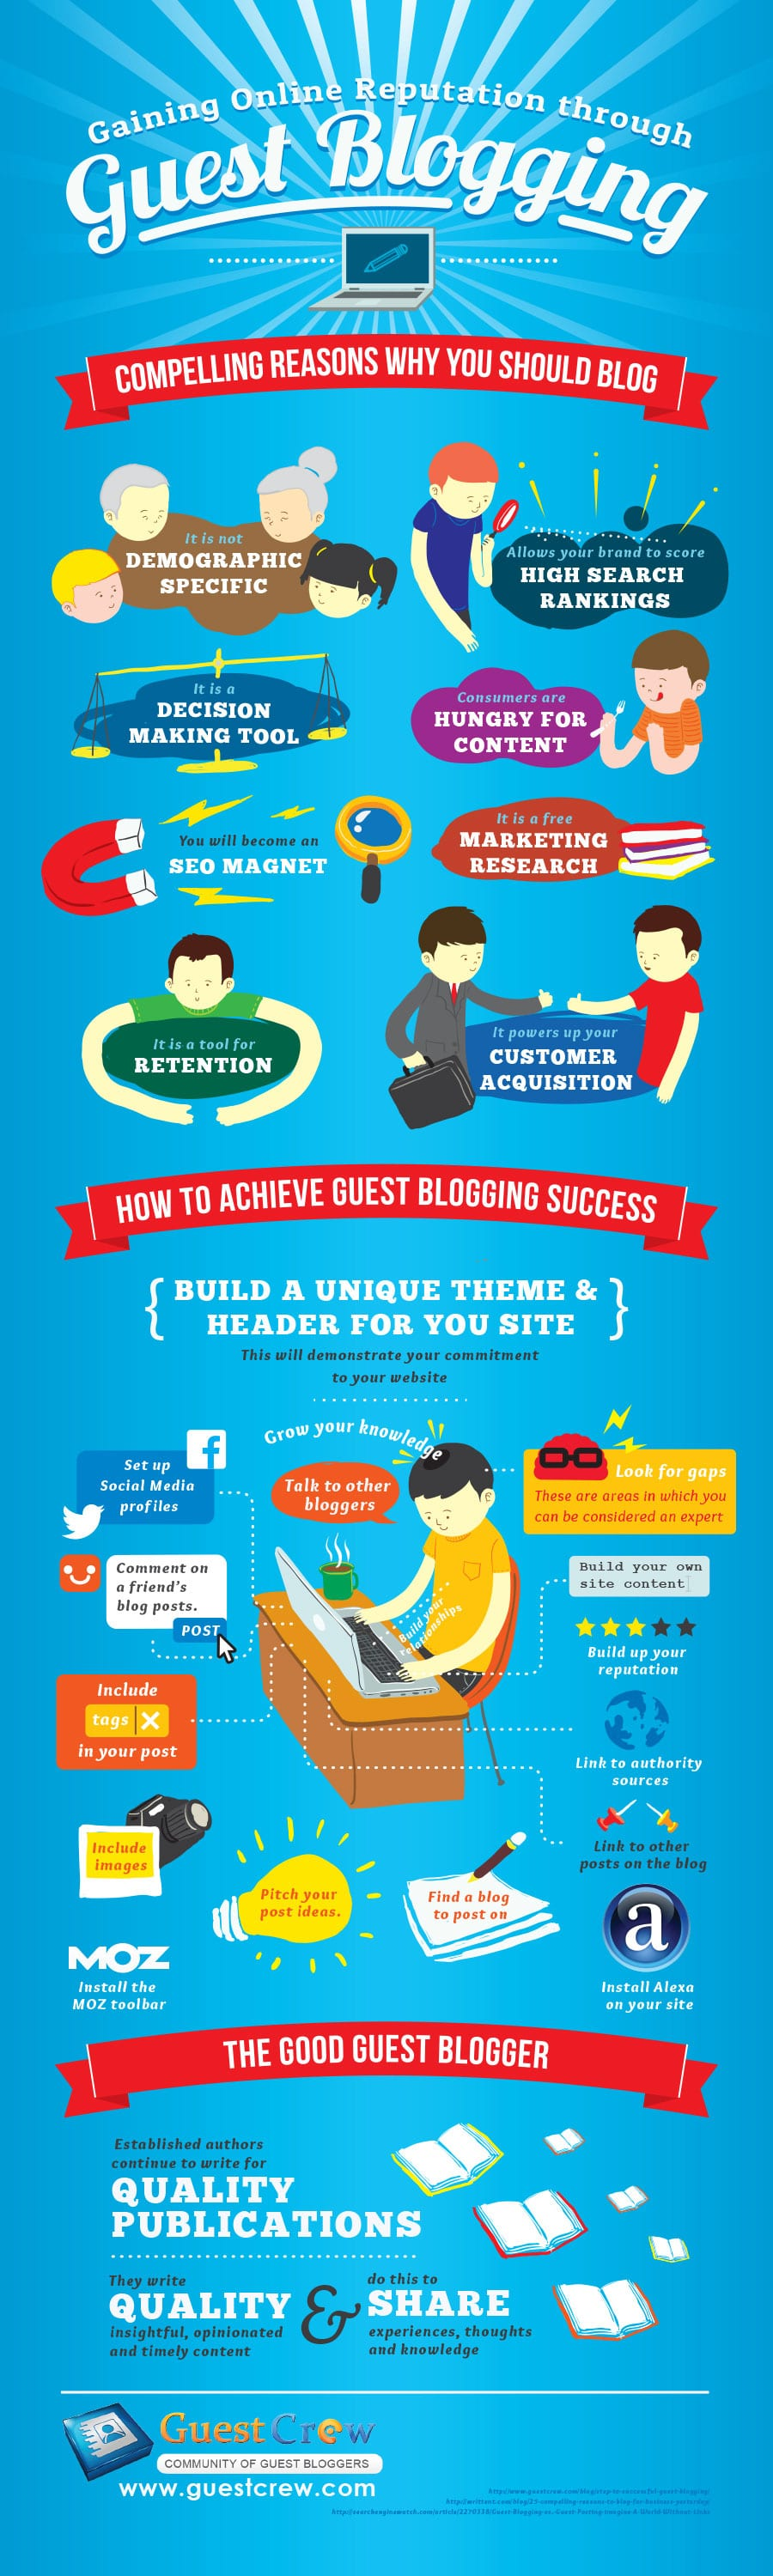 guest-blogging-online-influence-infographic